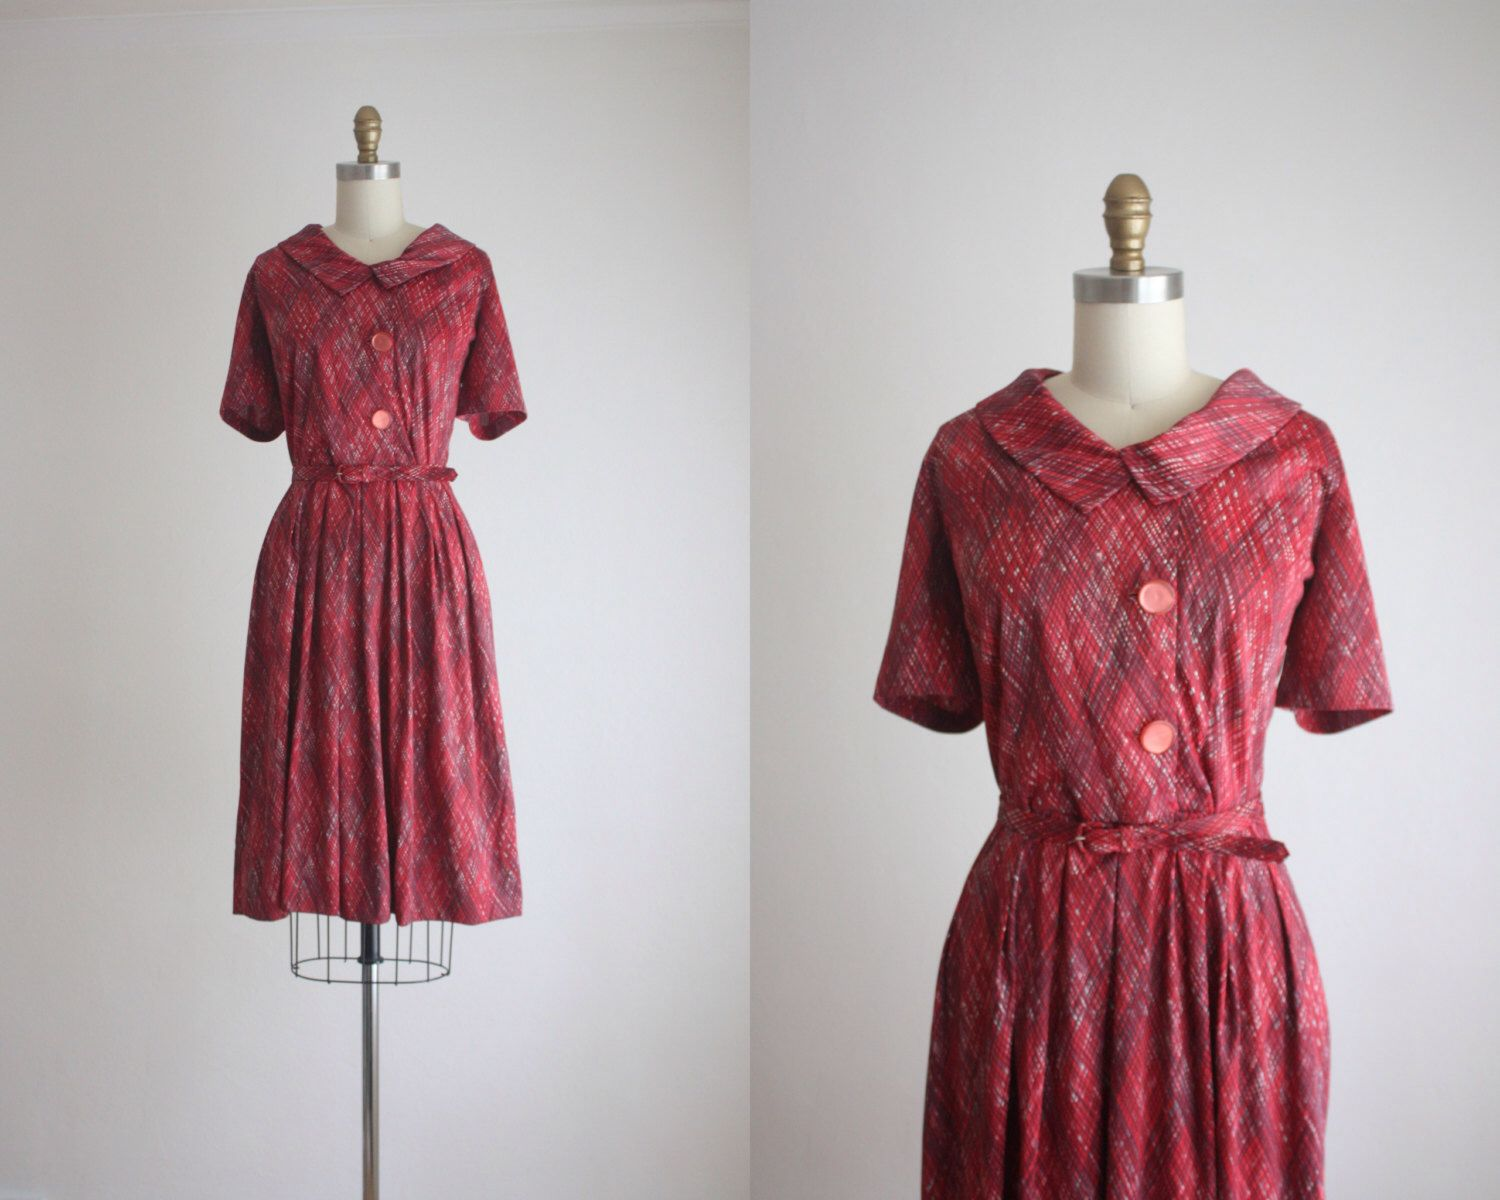 1960s marionberry shirtdress by 1919vintage on Etsy https://www.etsy.com/listing/469262464/1960s-marionberry-shirtdress